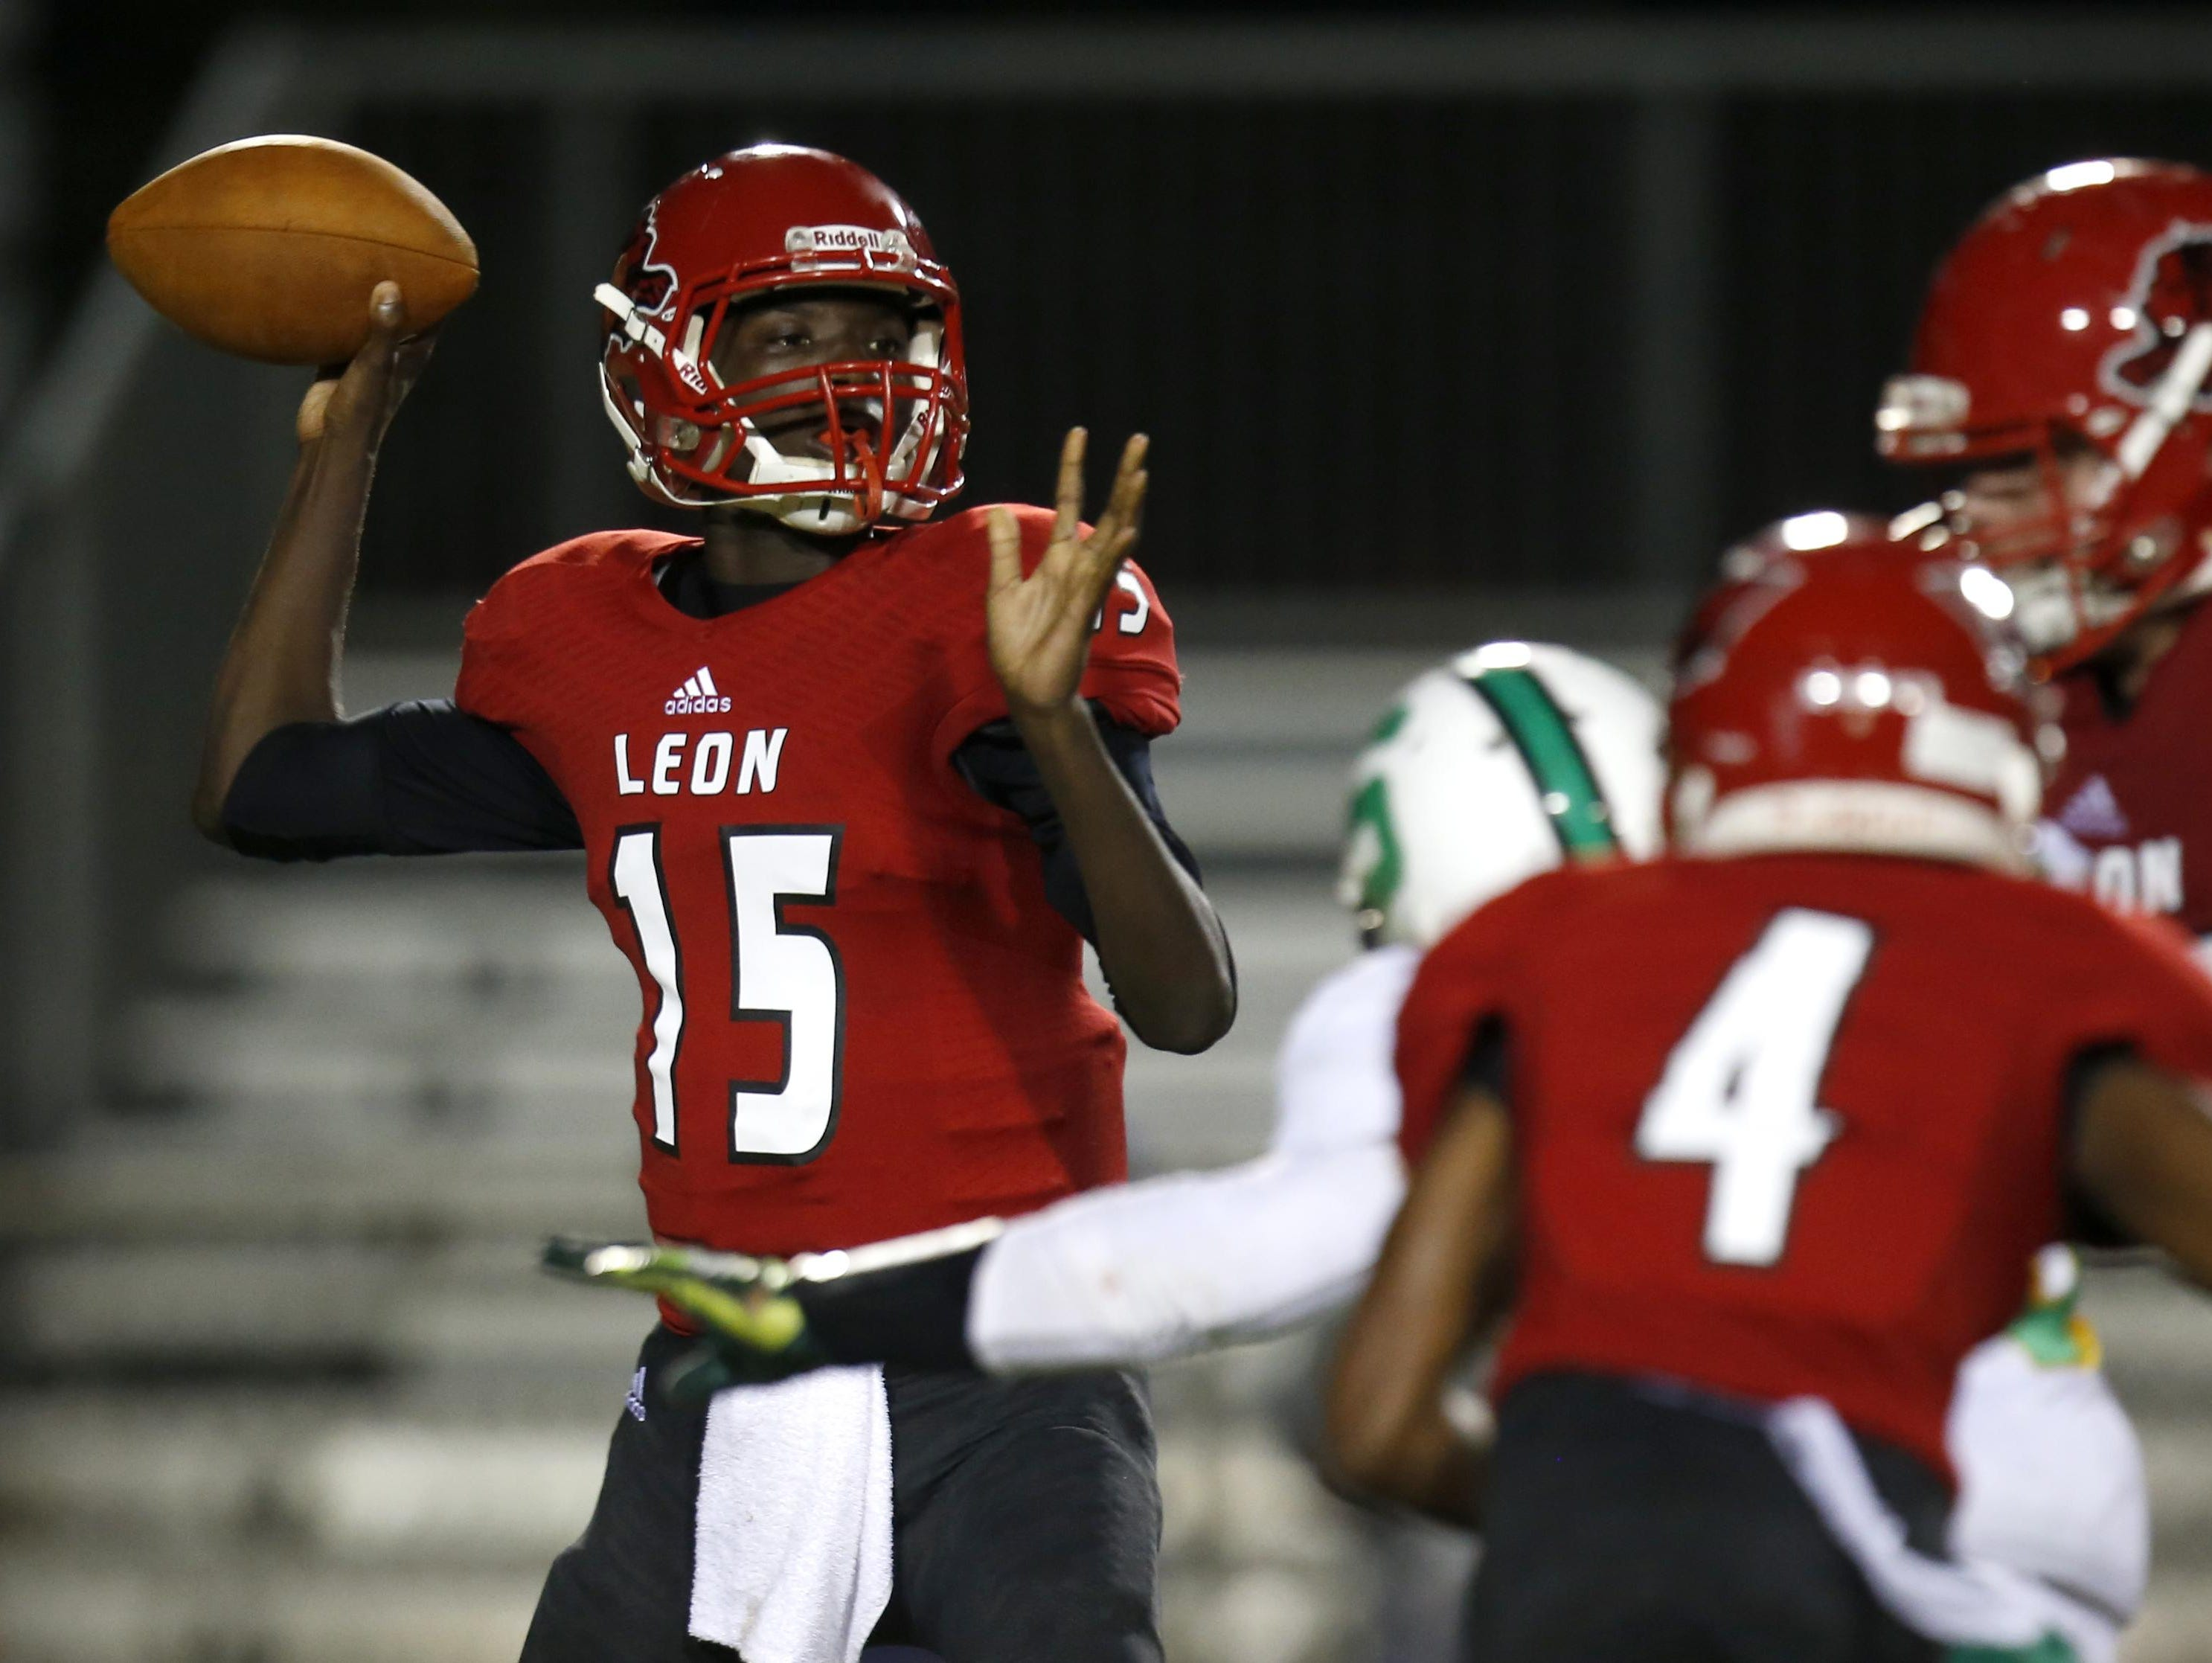 Leon quarterback Ty Glasco makes a throw against Suwannee as the Lions kicked off their 100th season Friday at Gene Cox Stadium with a 10-7 win over the Bulldogs on a last-second field goal.